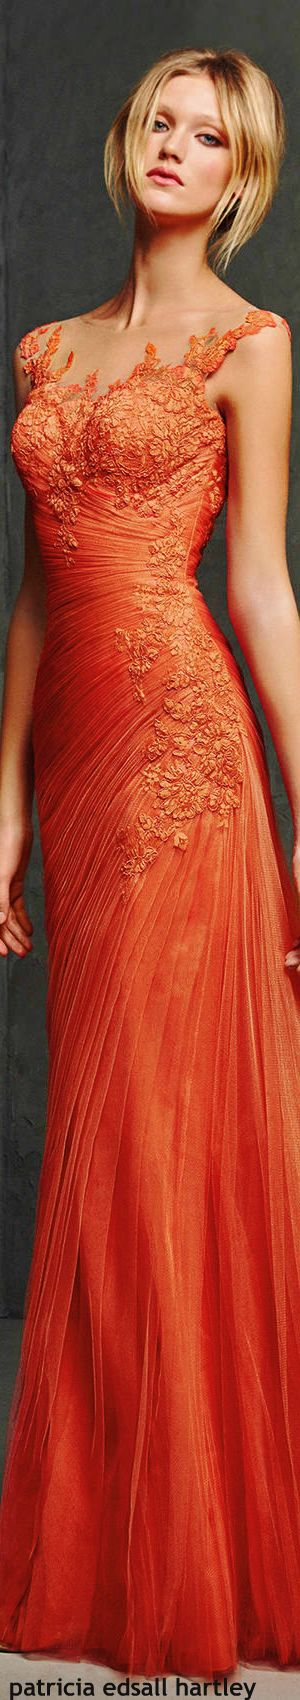 Pronovias | fashion and glamour | the elegant evening gown in orange | story of…